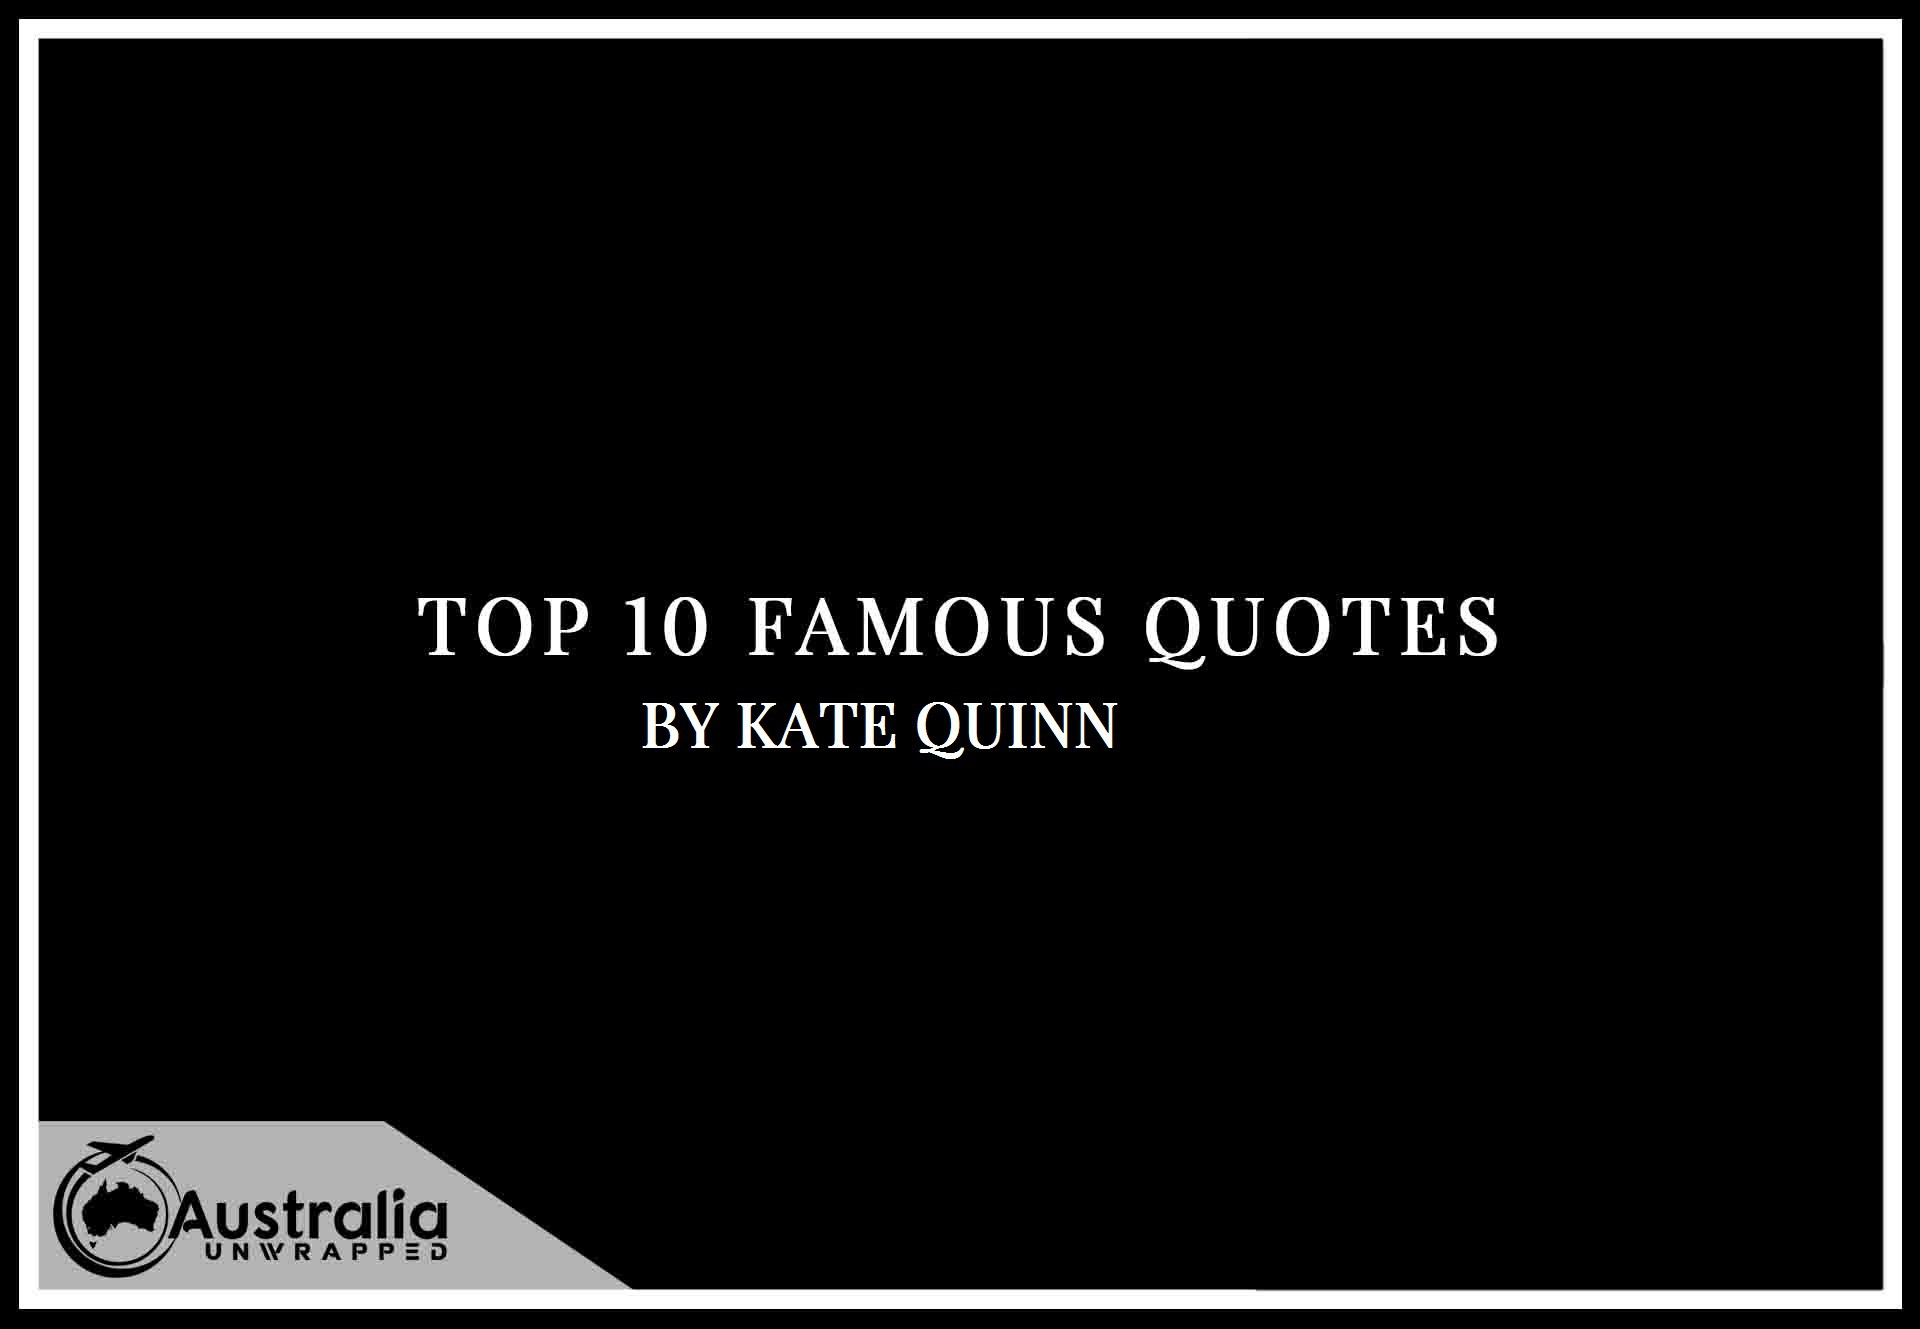 Kate Quinn's Top 10 Popular and Famous Quotes